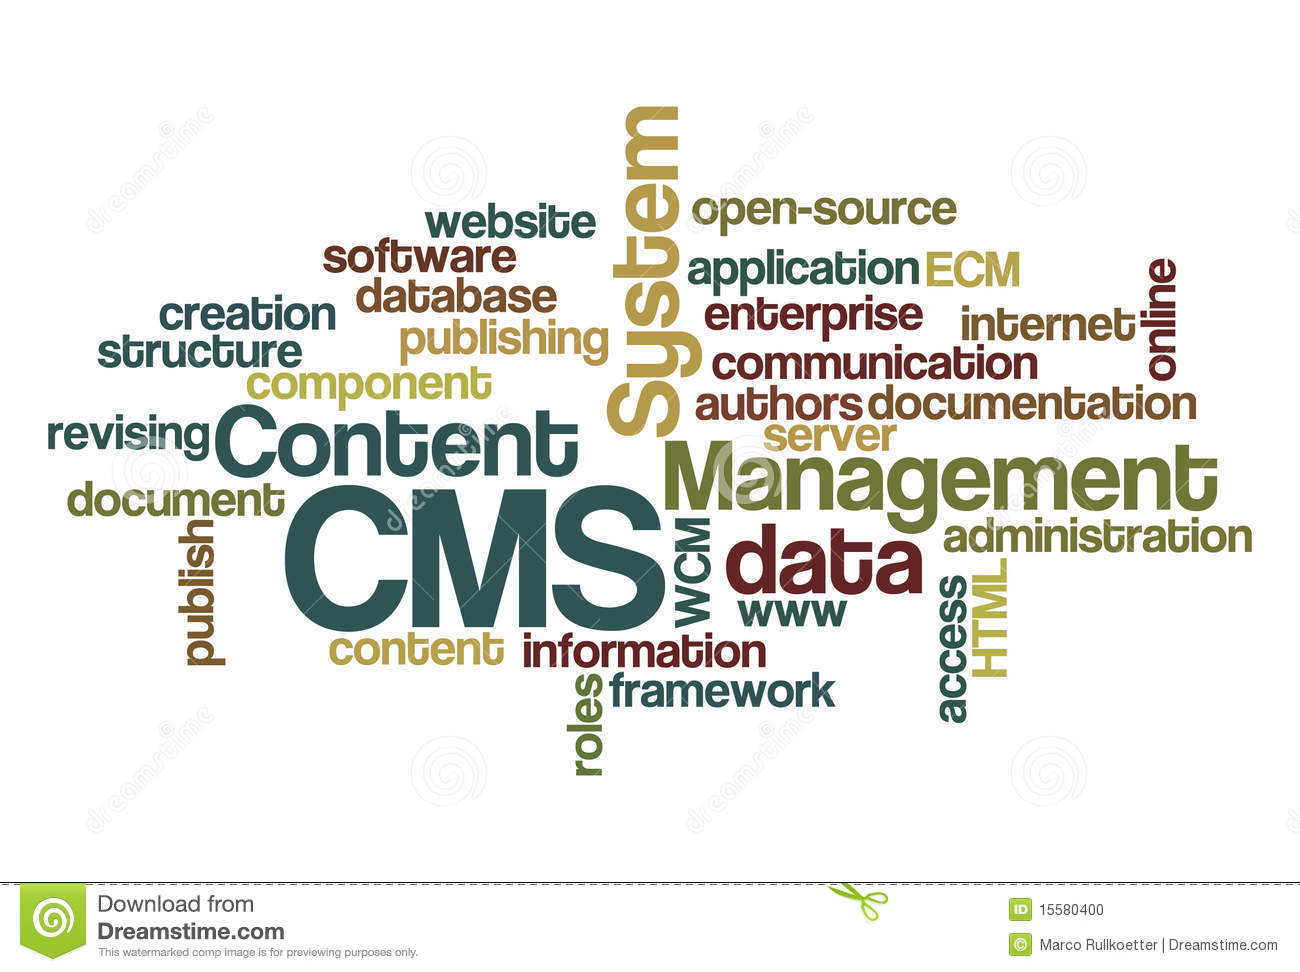 Top 10 Most Usable Content Management Systems